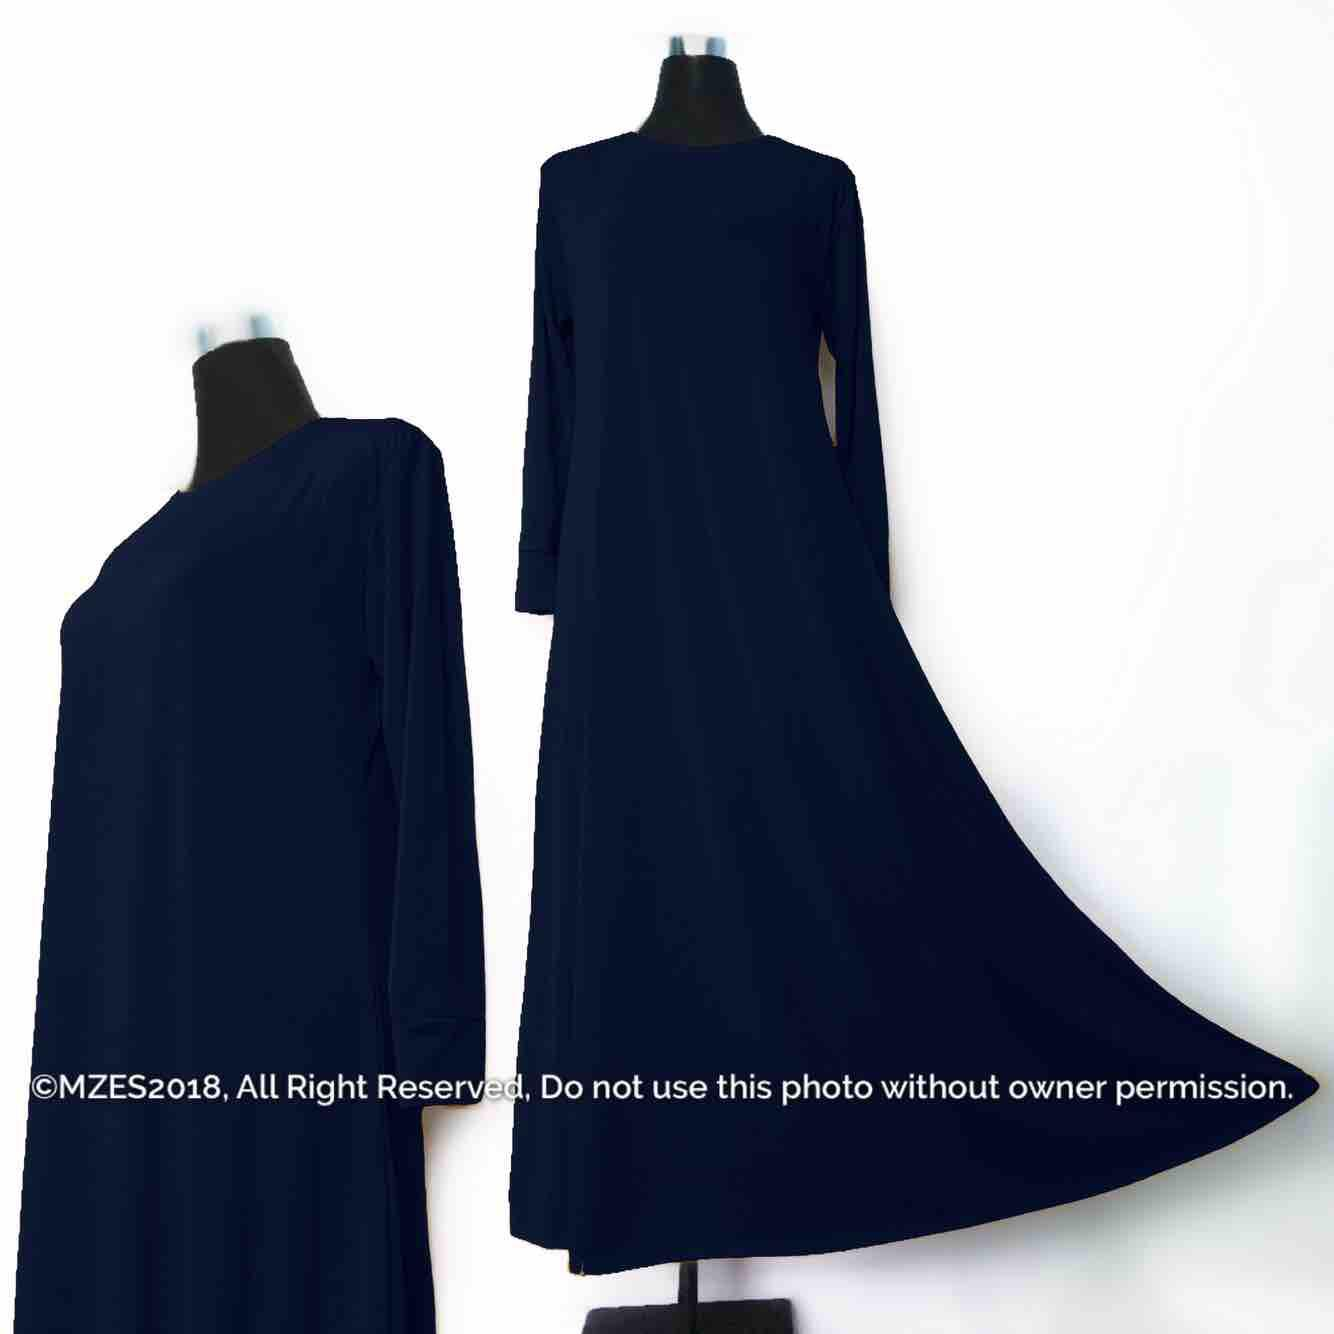 b09502328e Muslim Dresses for sale - Muslim Women Dress online brands